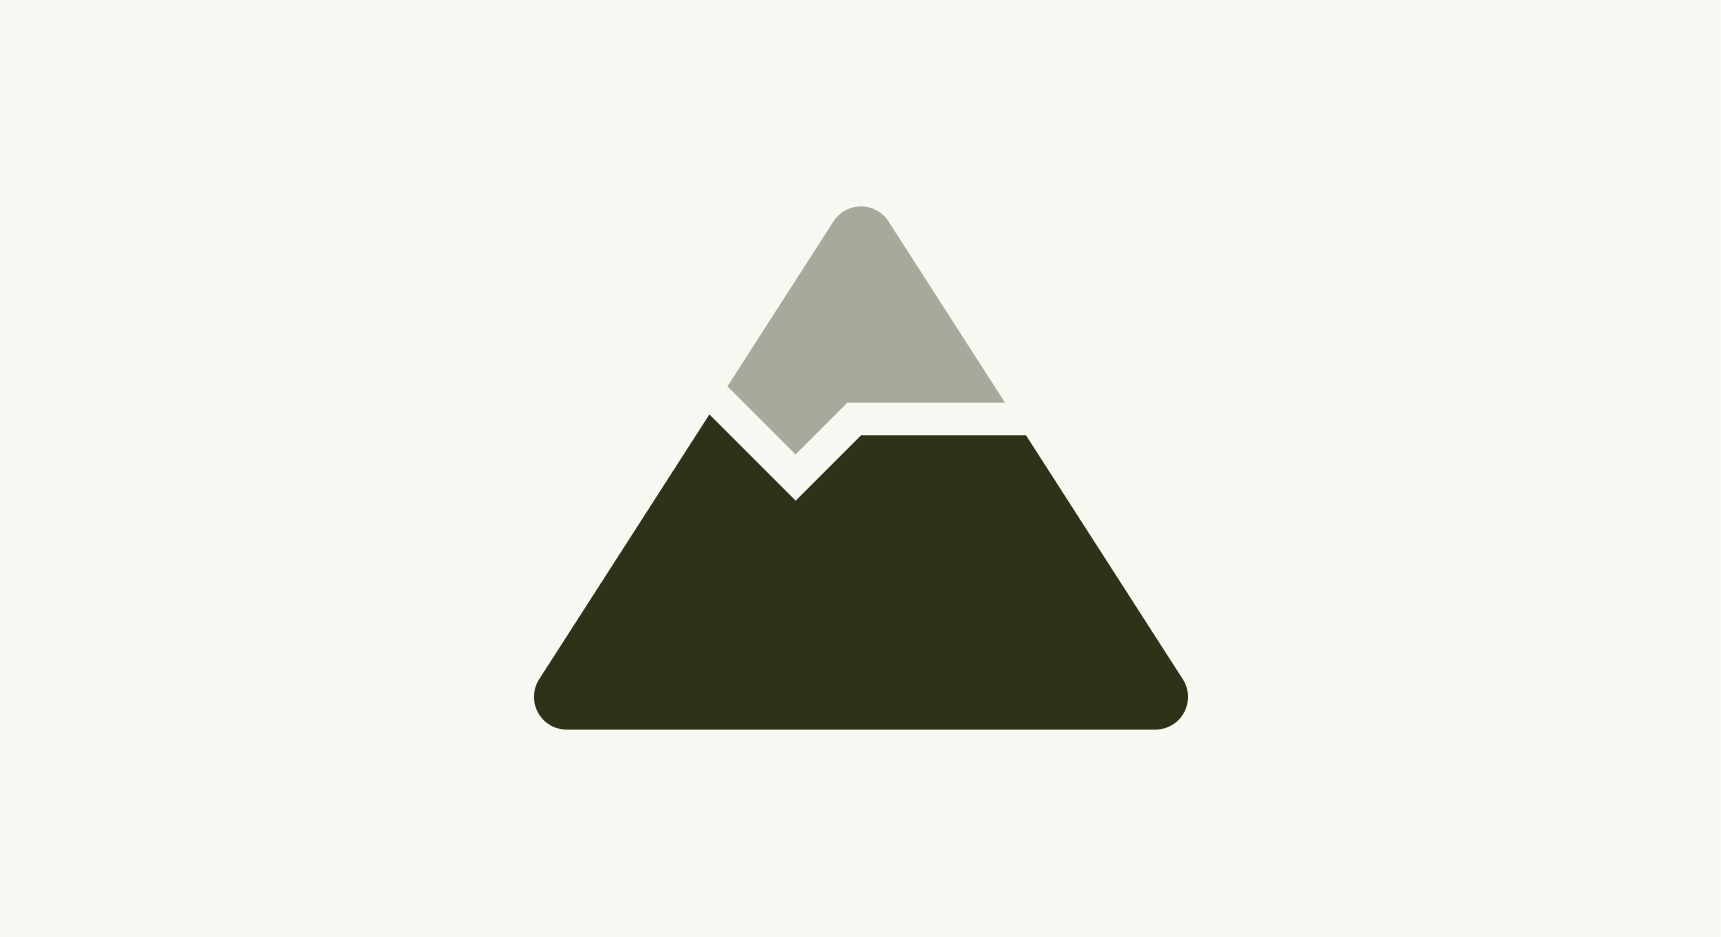 Icon of a mountain